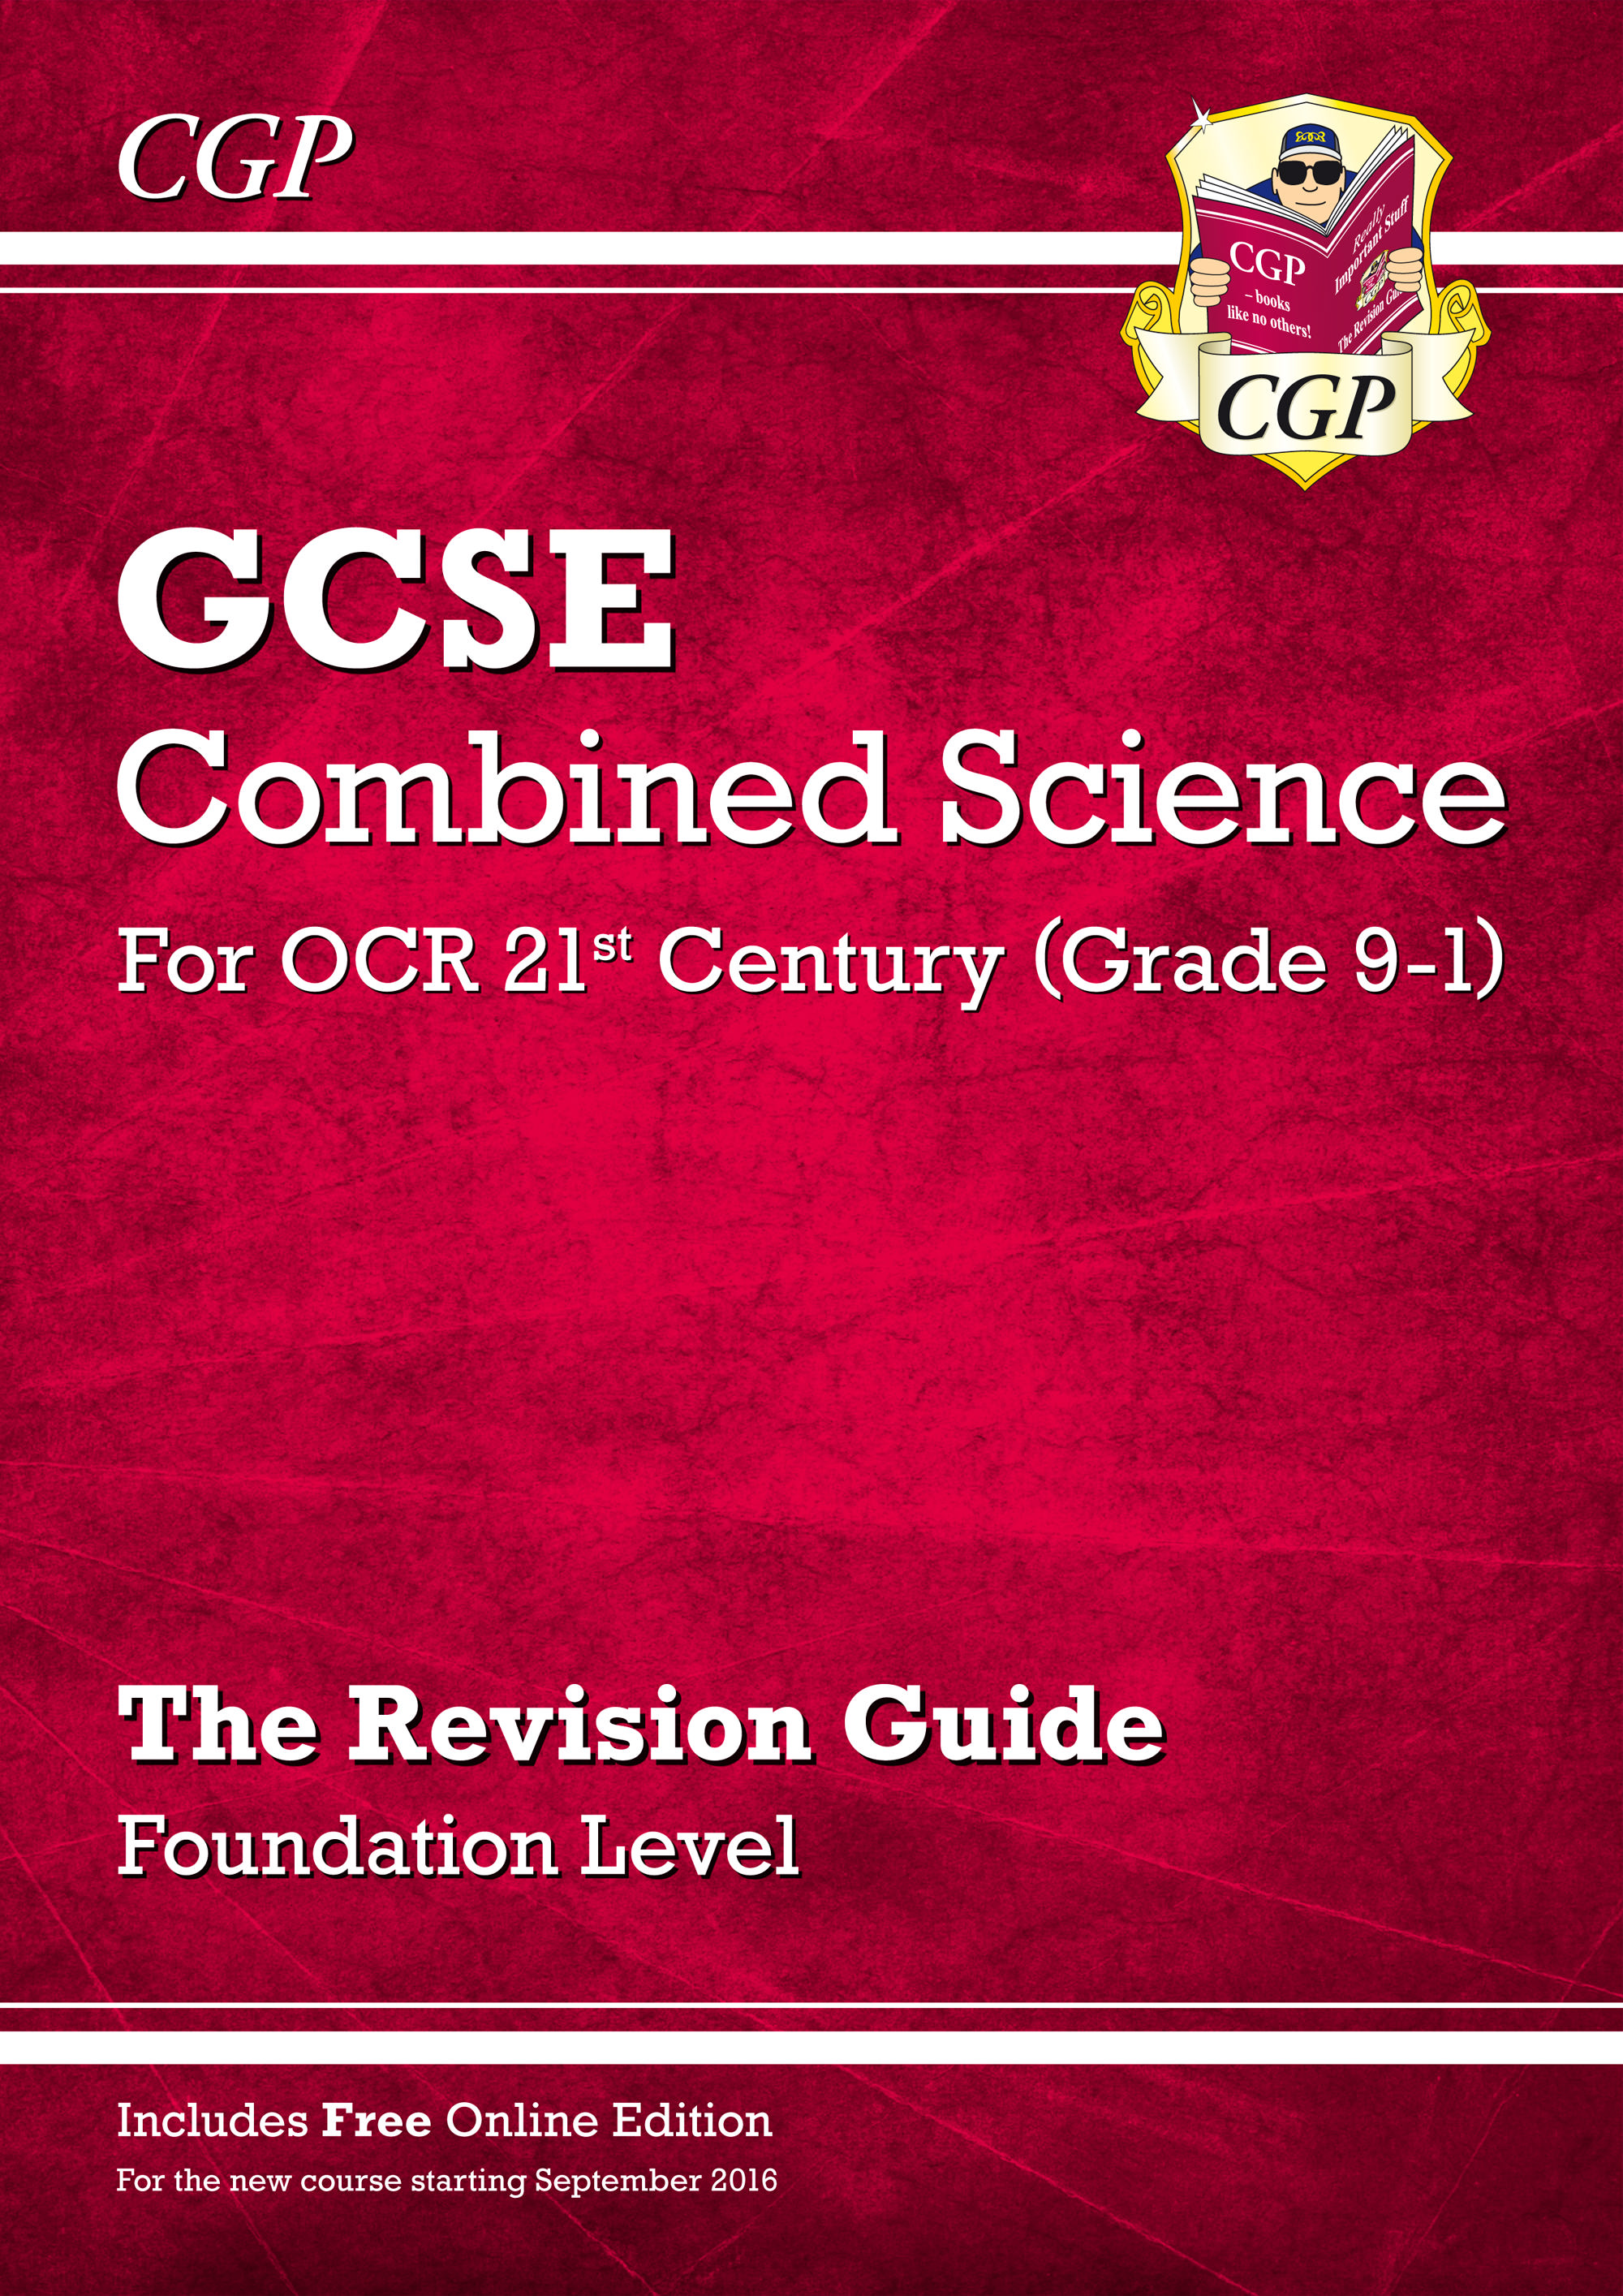 S2FR45 - Grade 9-1 GCSE Combined Science: OCR 21st Century Revision Guide with Online Edition Founda